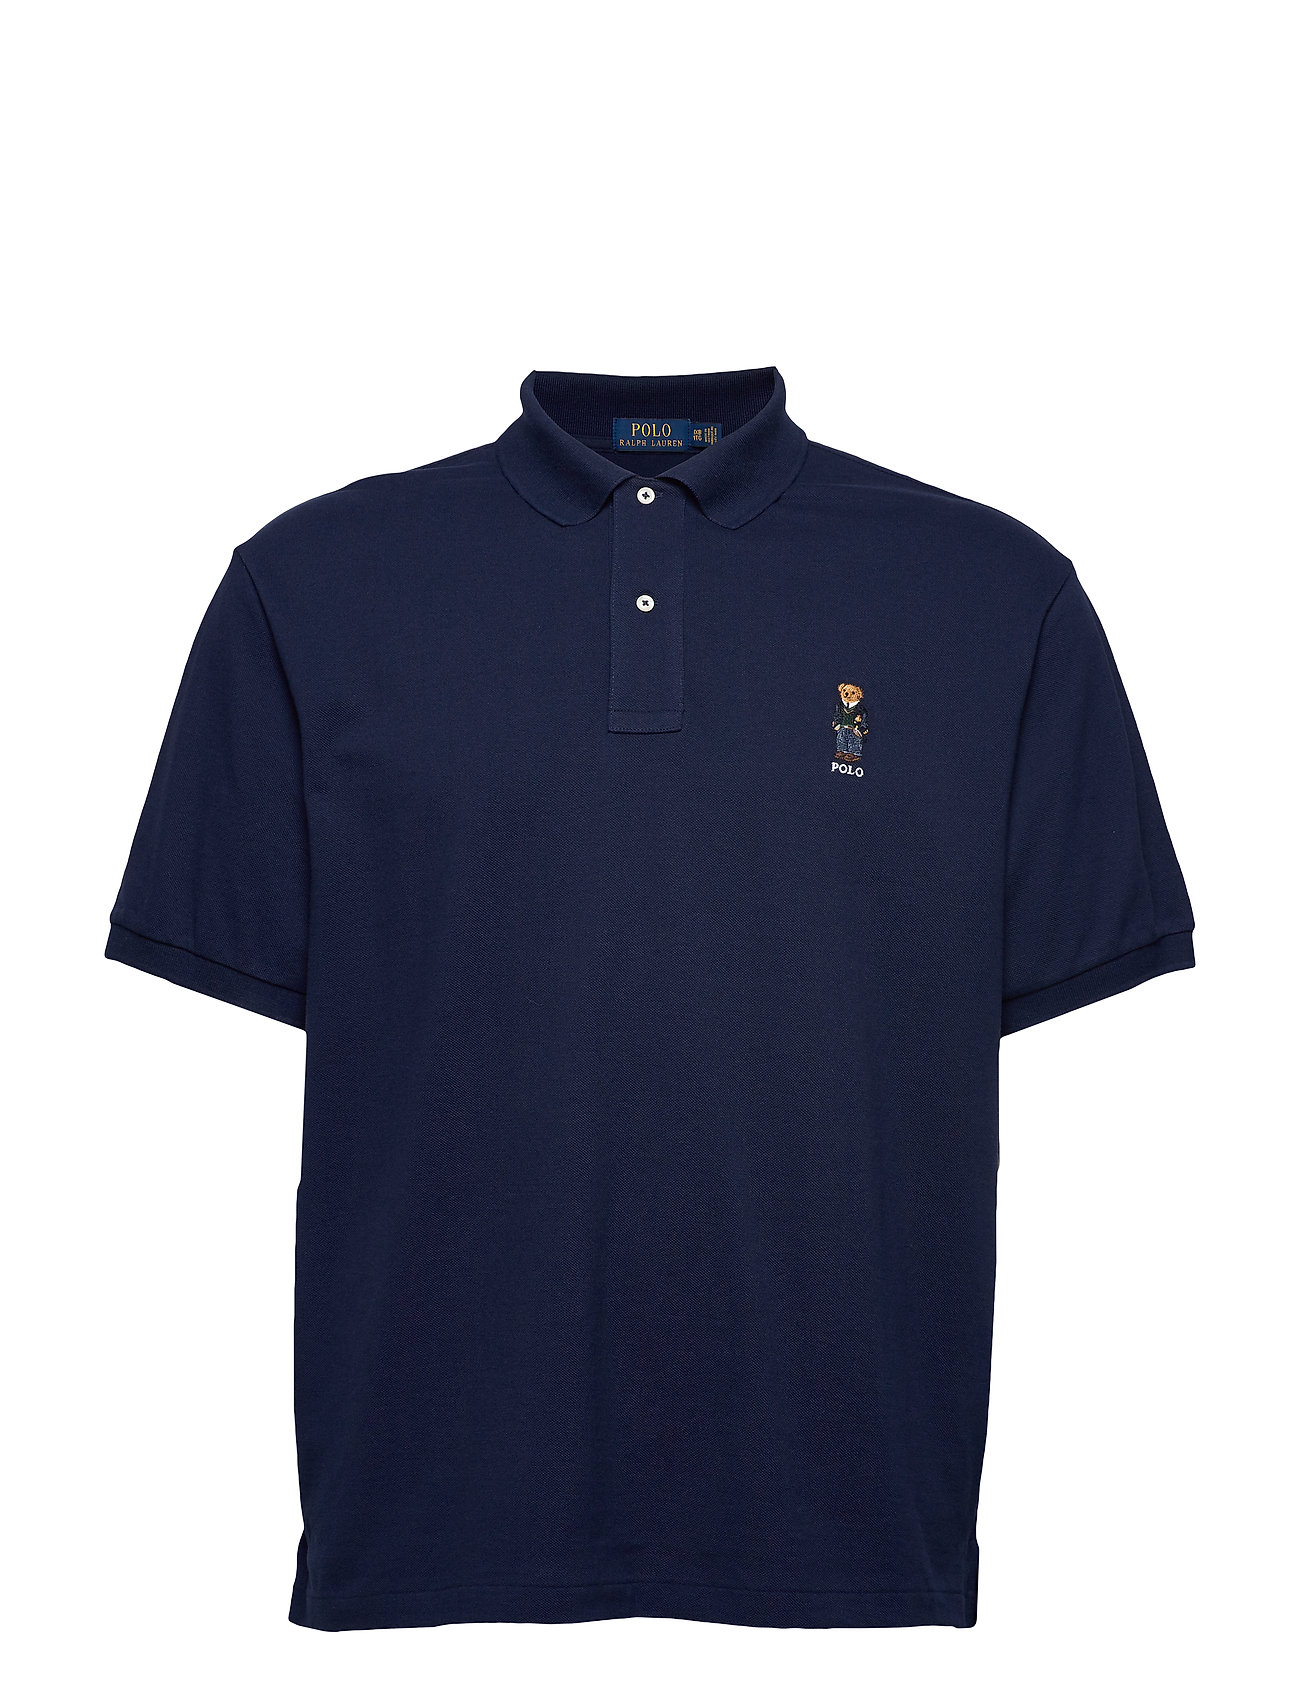 Polo Ralph Lauren Big & Tall Classic Fit Bear Mesh Polo - CRUISE NAVY